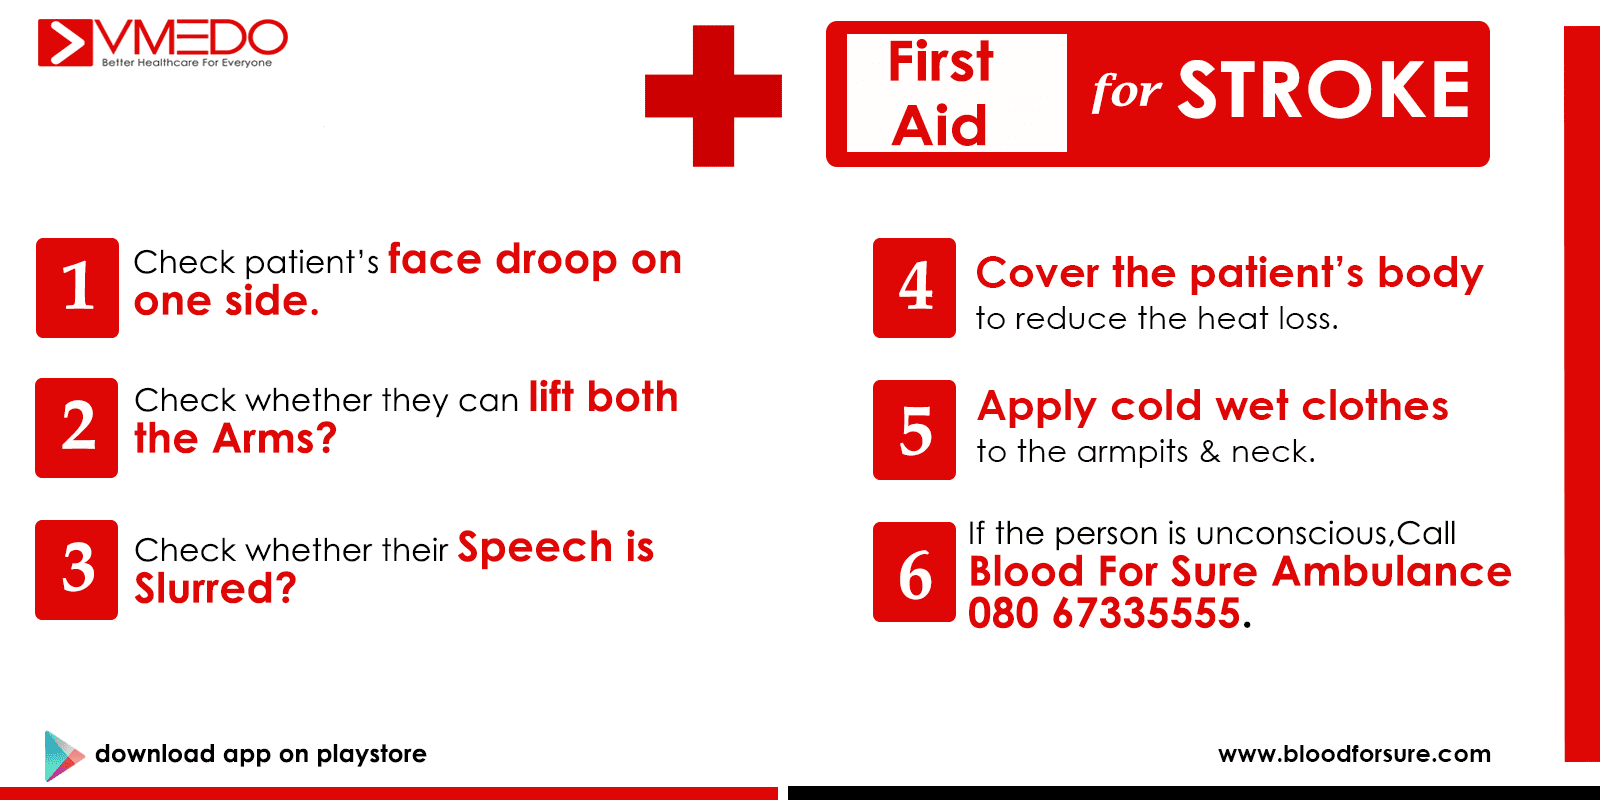 first-aid-for-stroke